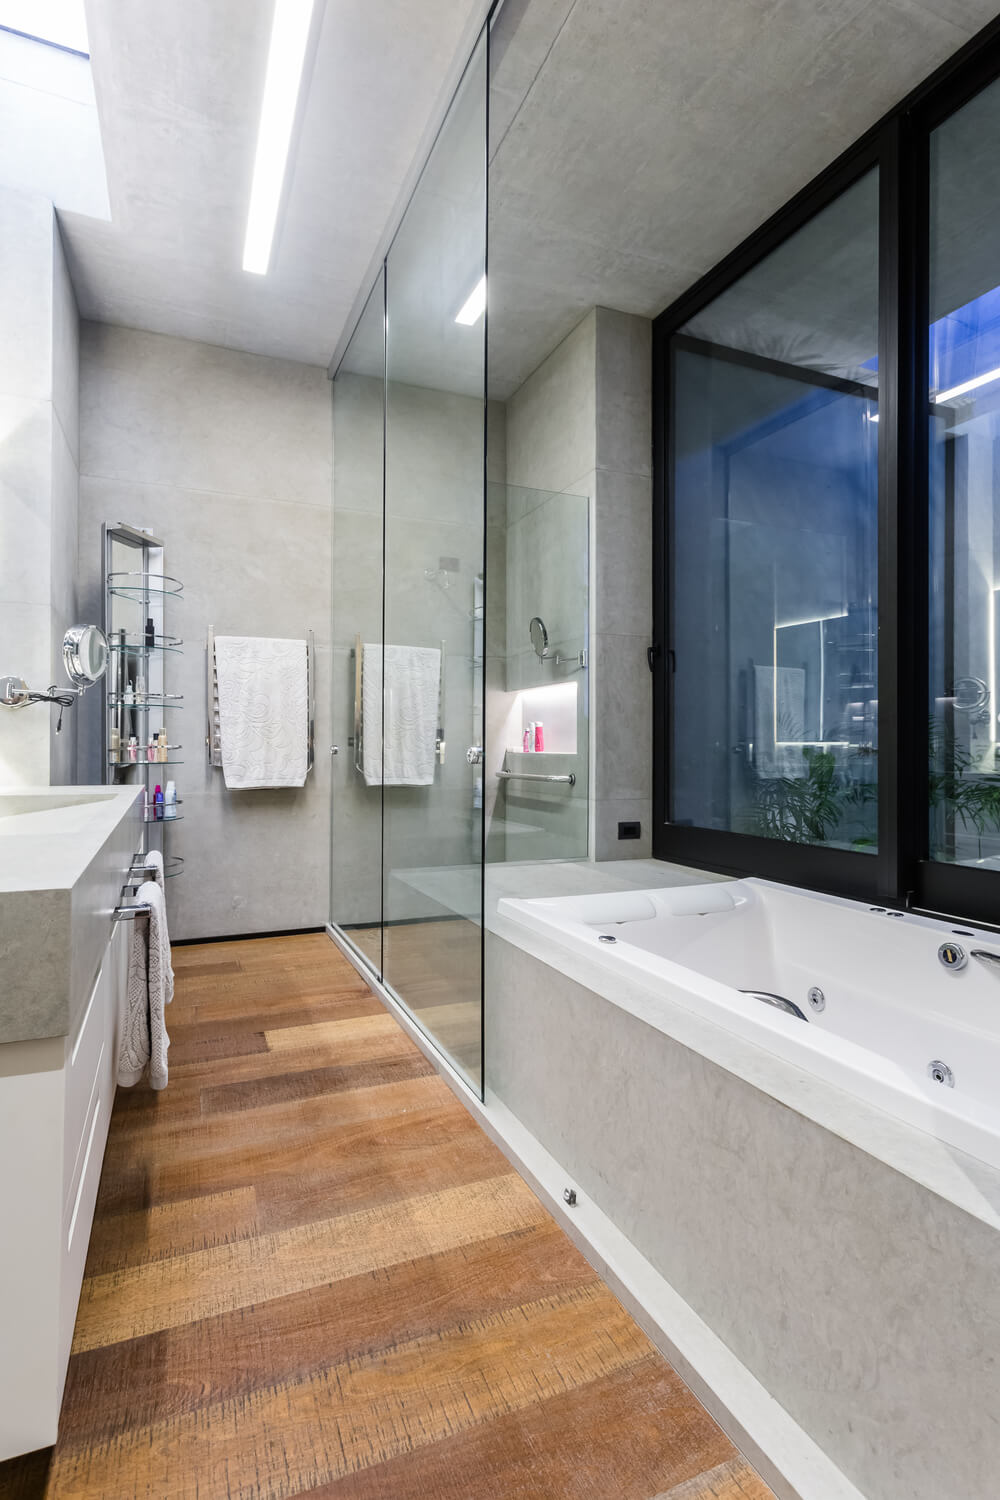 This bathroom has a glass-enclosed shower area on the far corner next to the bathtub by the window.